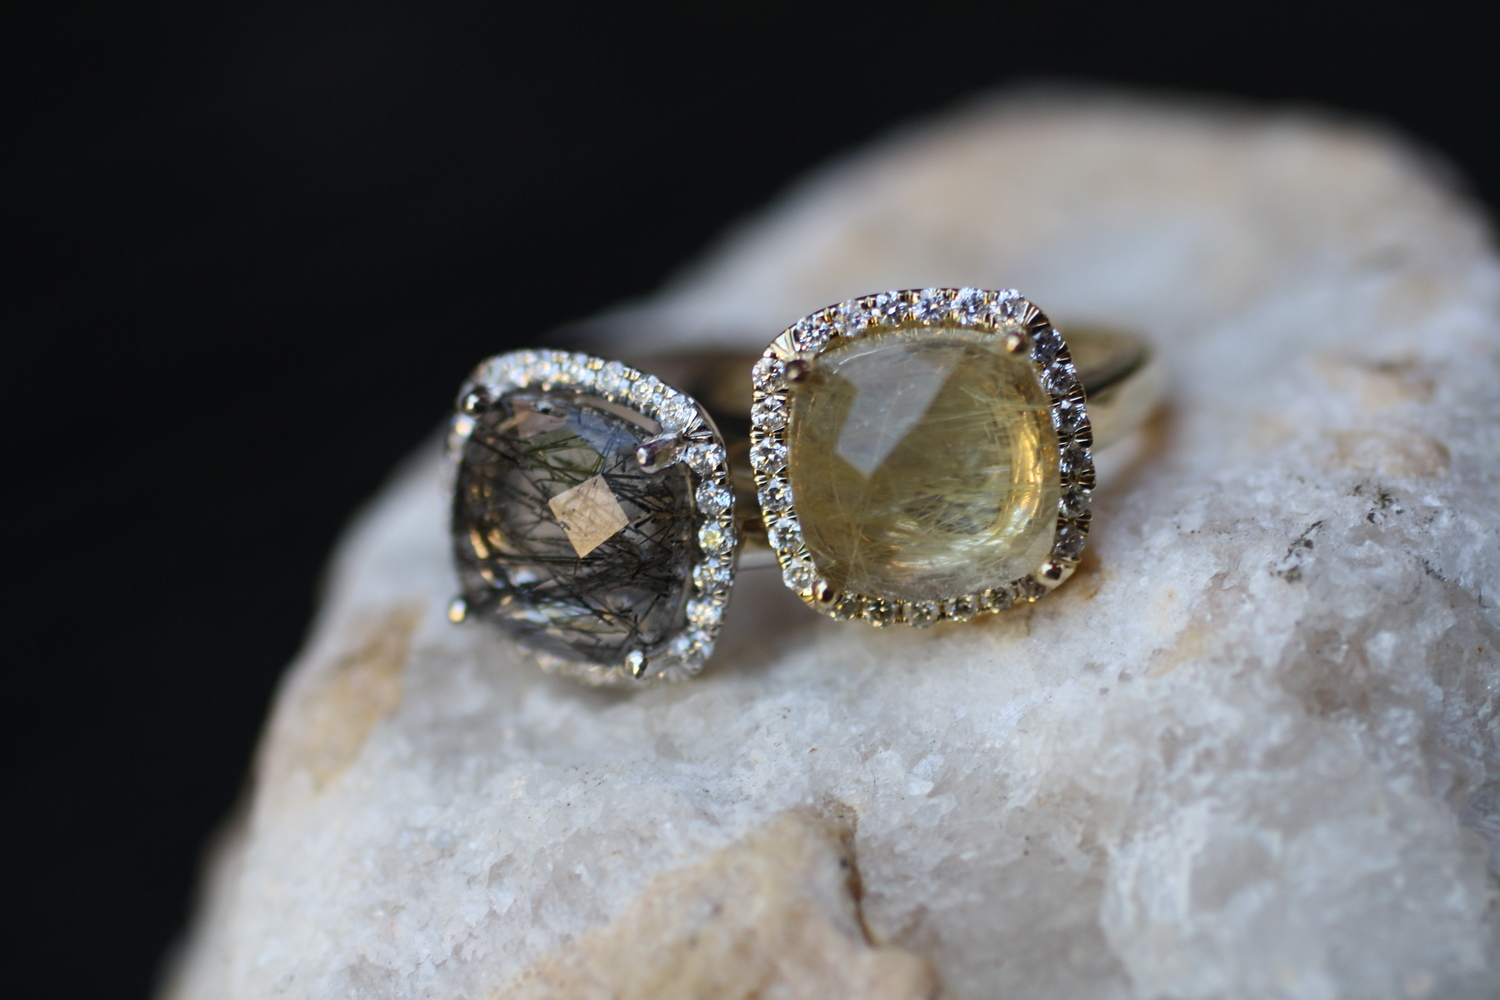 Colleen+&+Cristen+-+Tourmilated+Rutilated+Quartz+w+14KT+WG+YG+Custom+Wedding+Bands_04.jpg